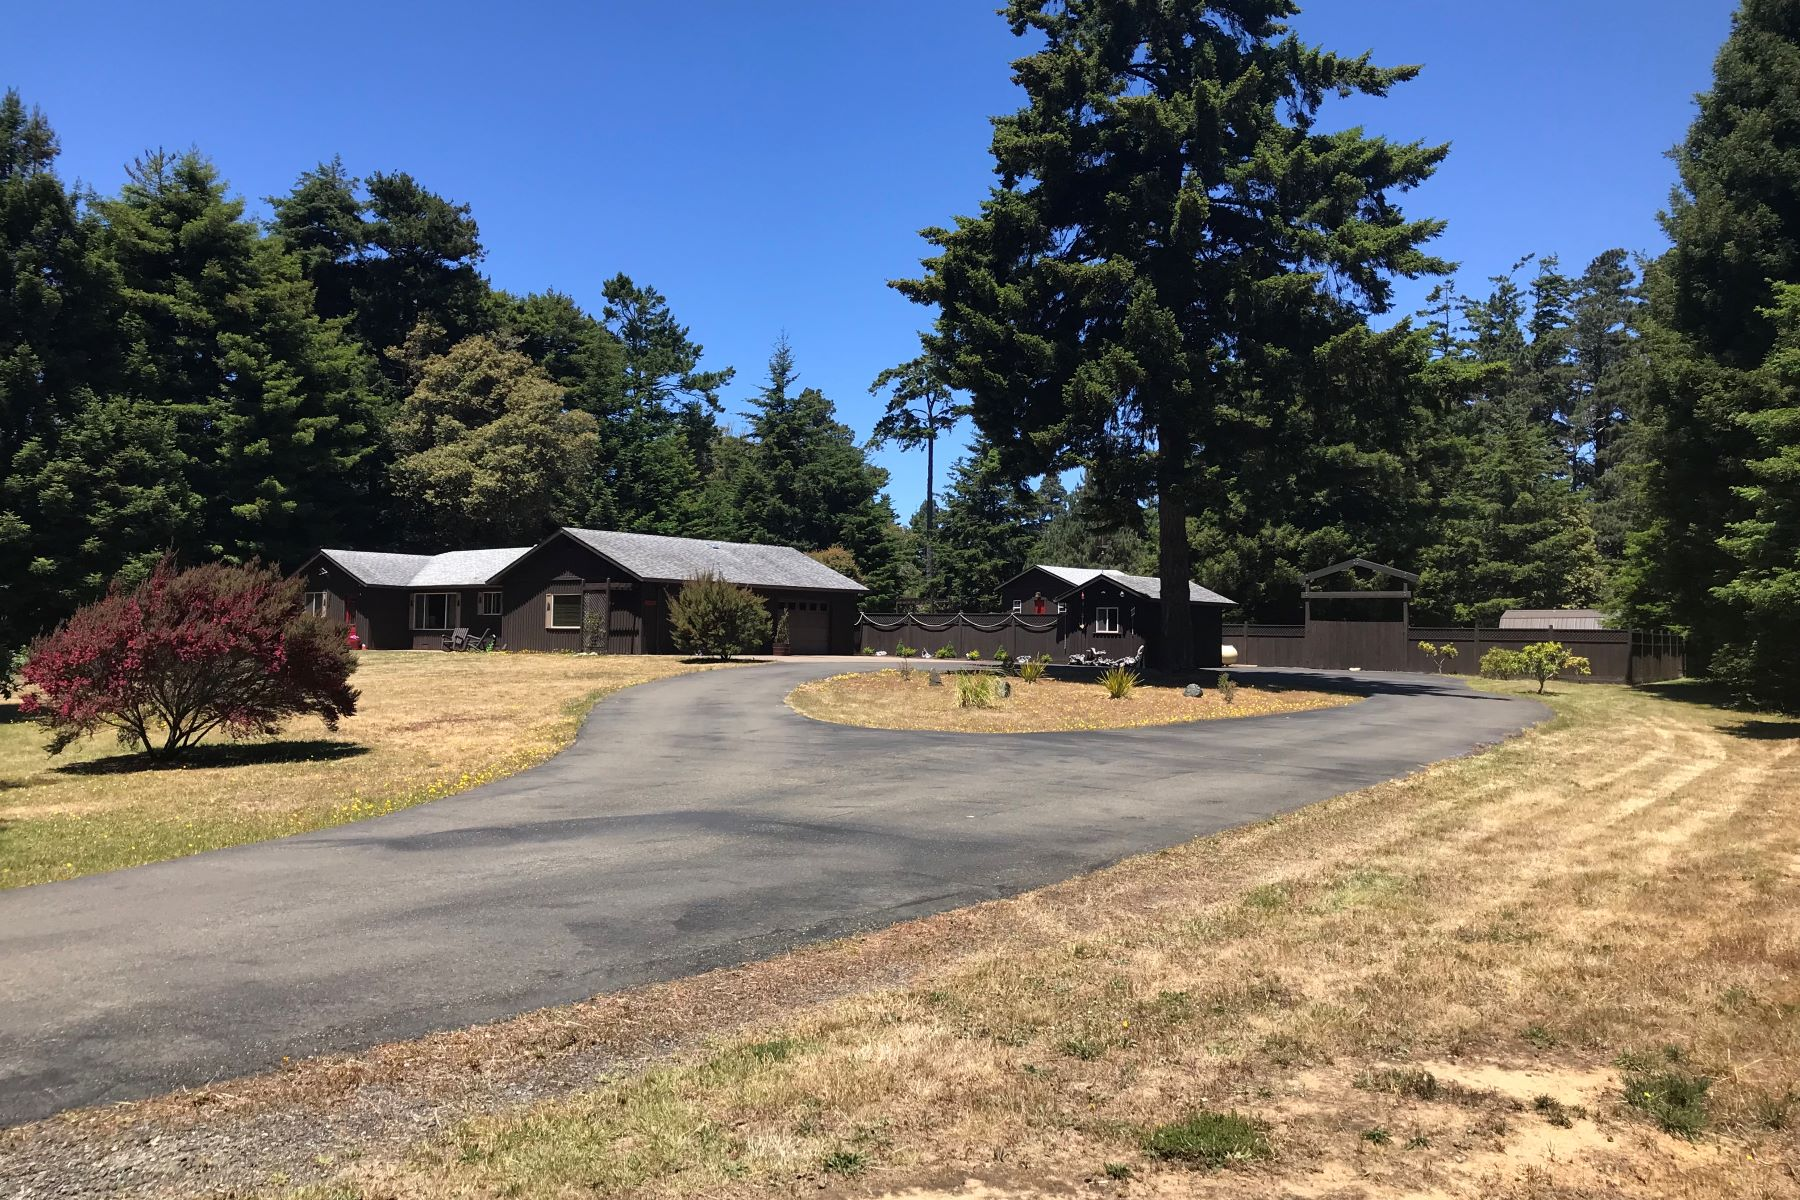 Single Family Home for Sale at Immaculate, Private and Move In Ready 16701 Pearl Ranch Road Fort Bragg, California 95437 United States